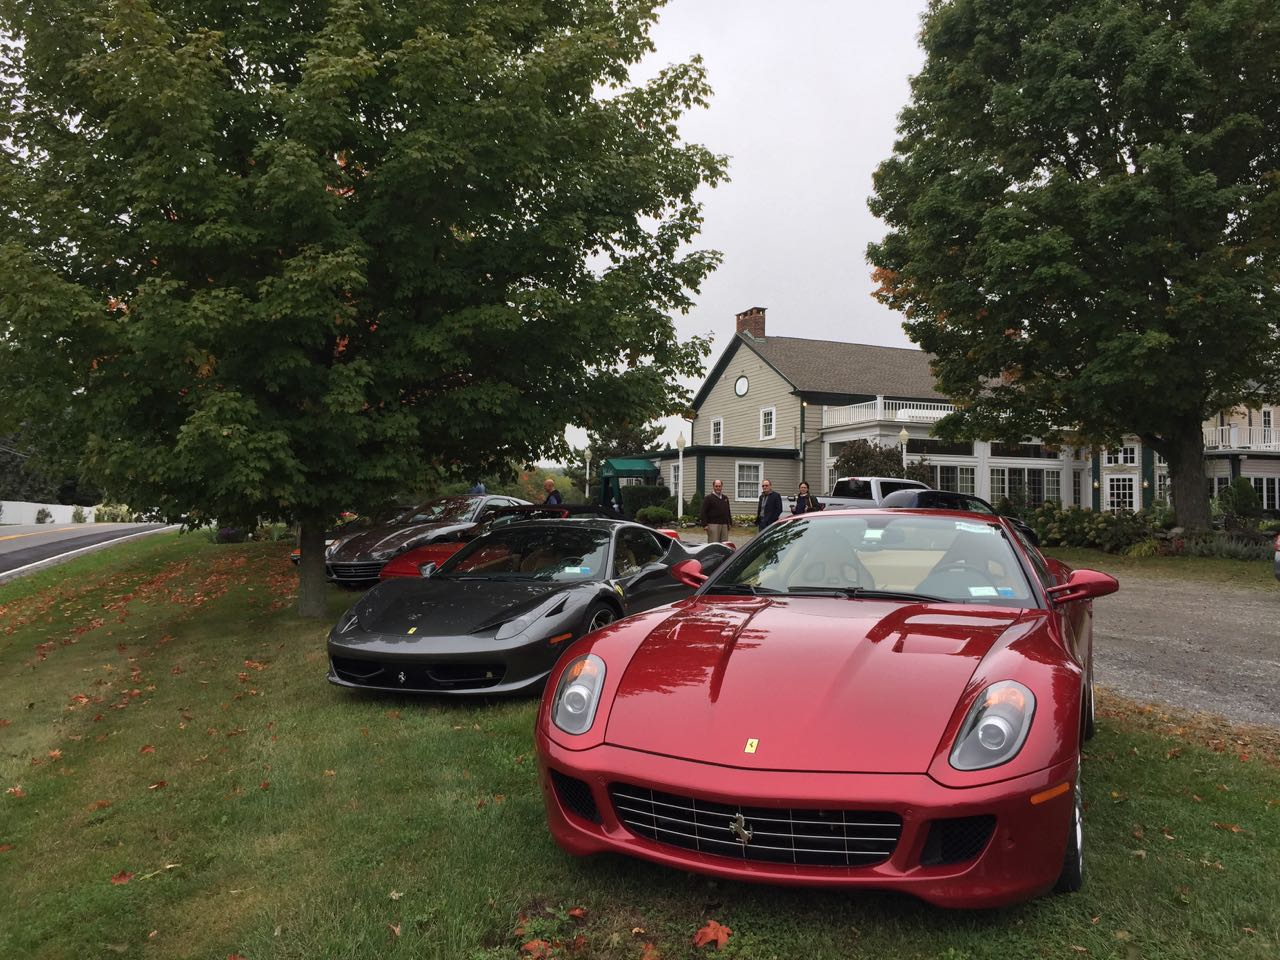 Merveilleux Oct 2, 2016. Hudson Valley Rally And Luncheon